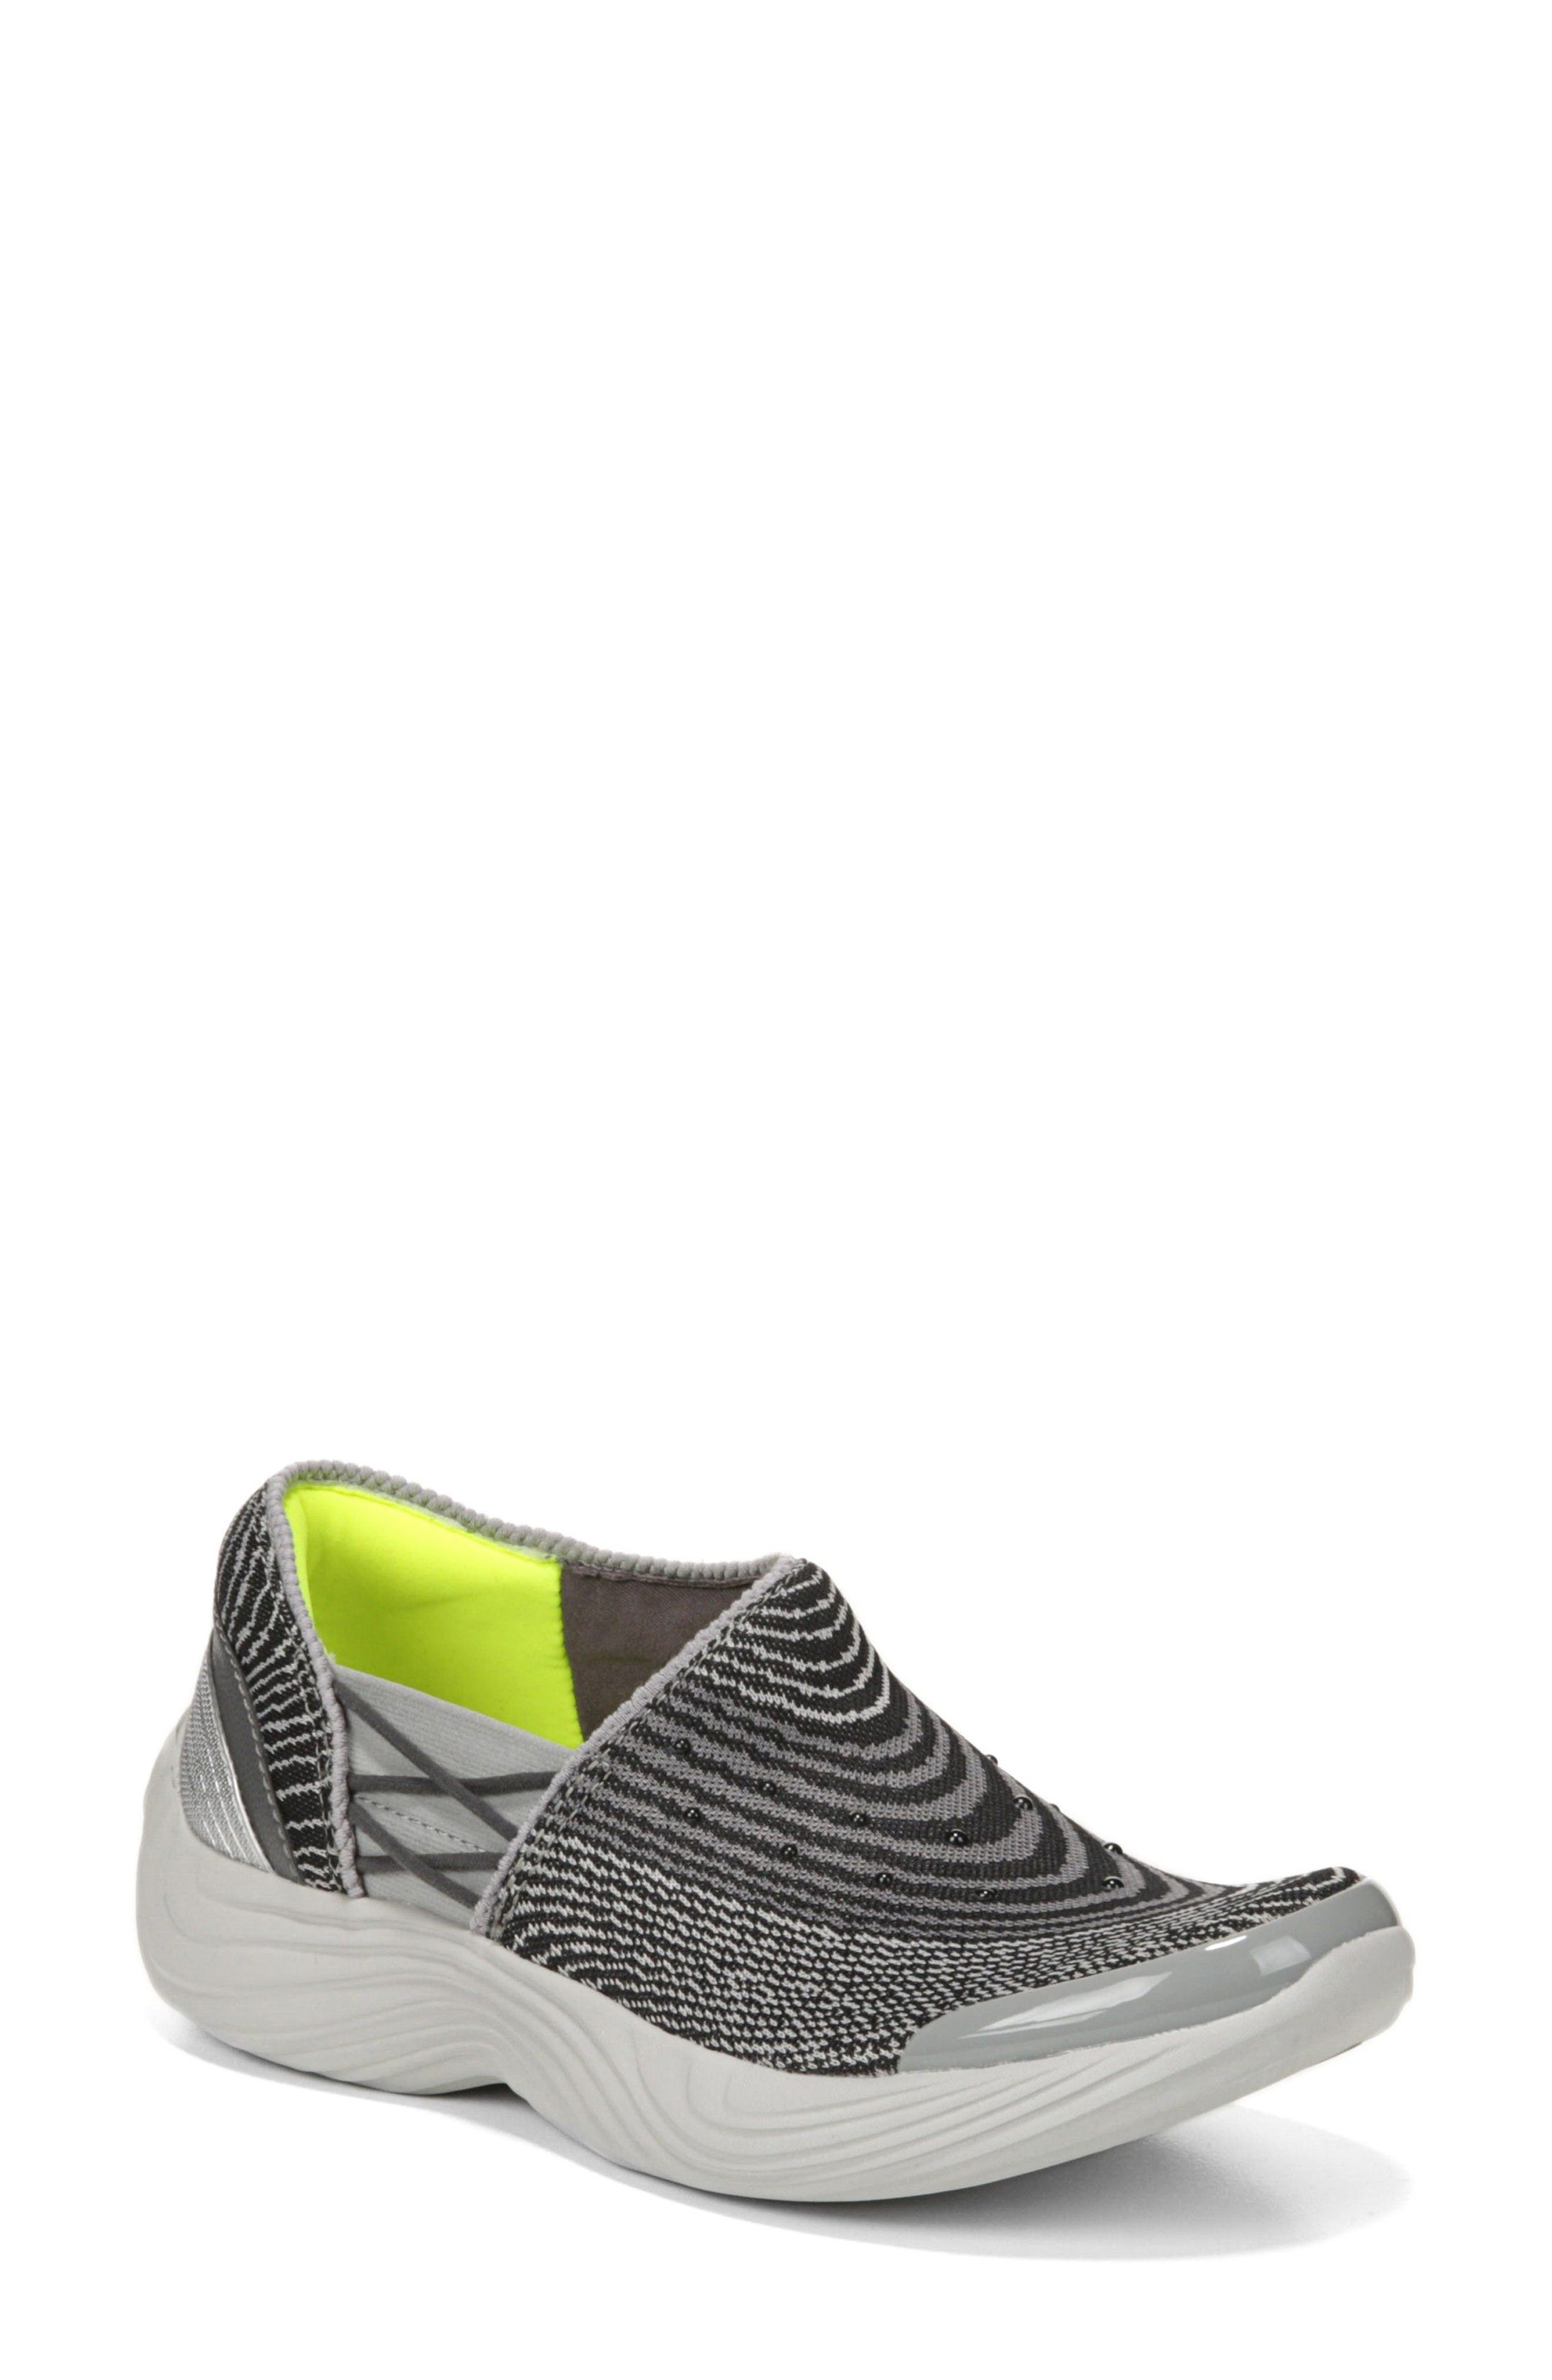 Main Image - BZees Tiger Slip-On Sneaker (Women)